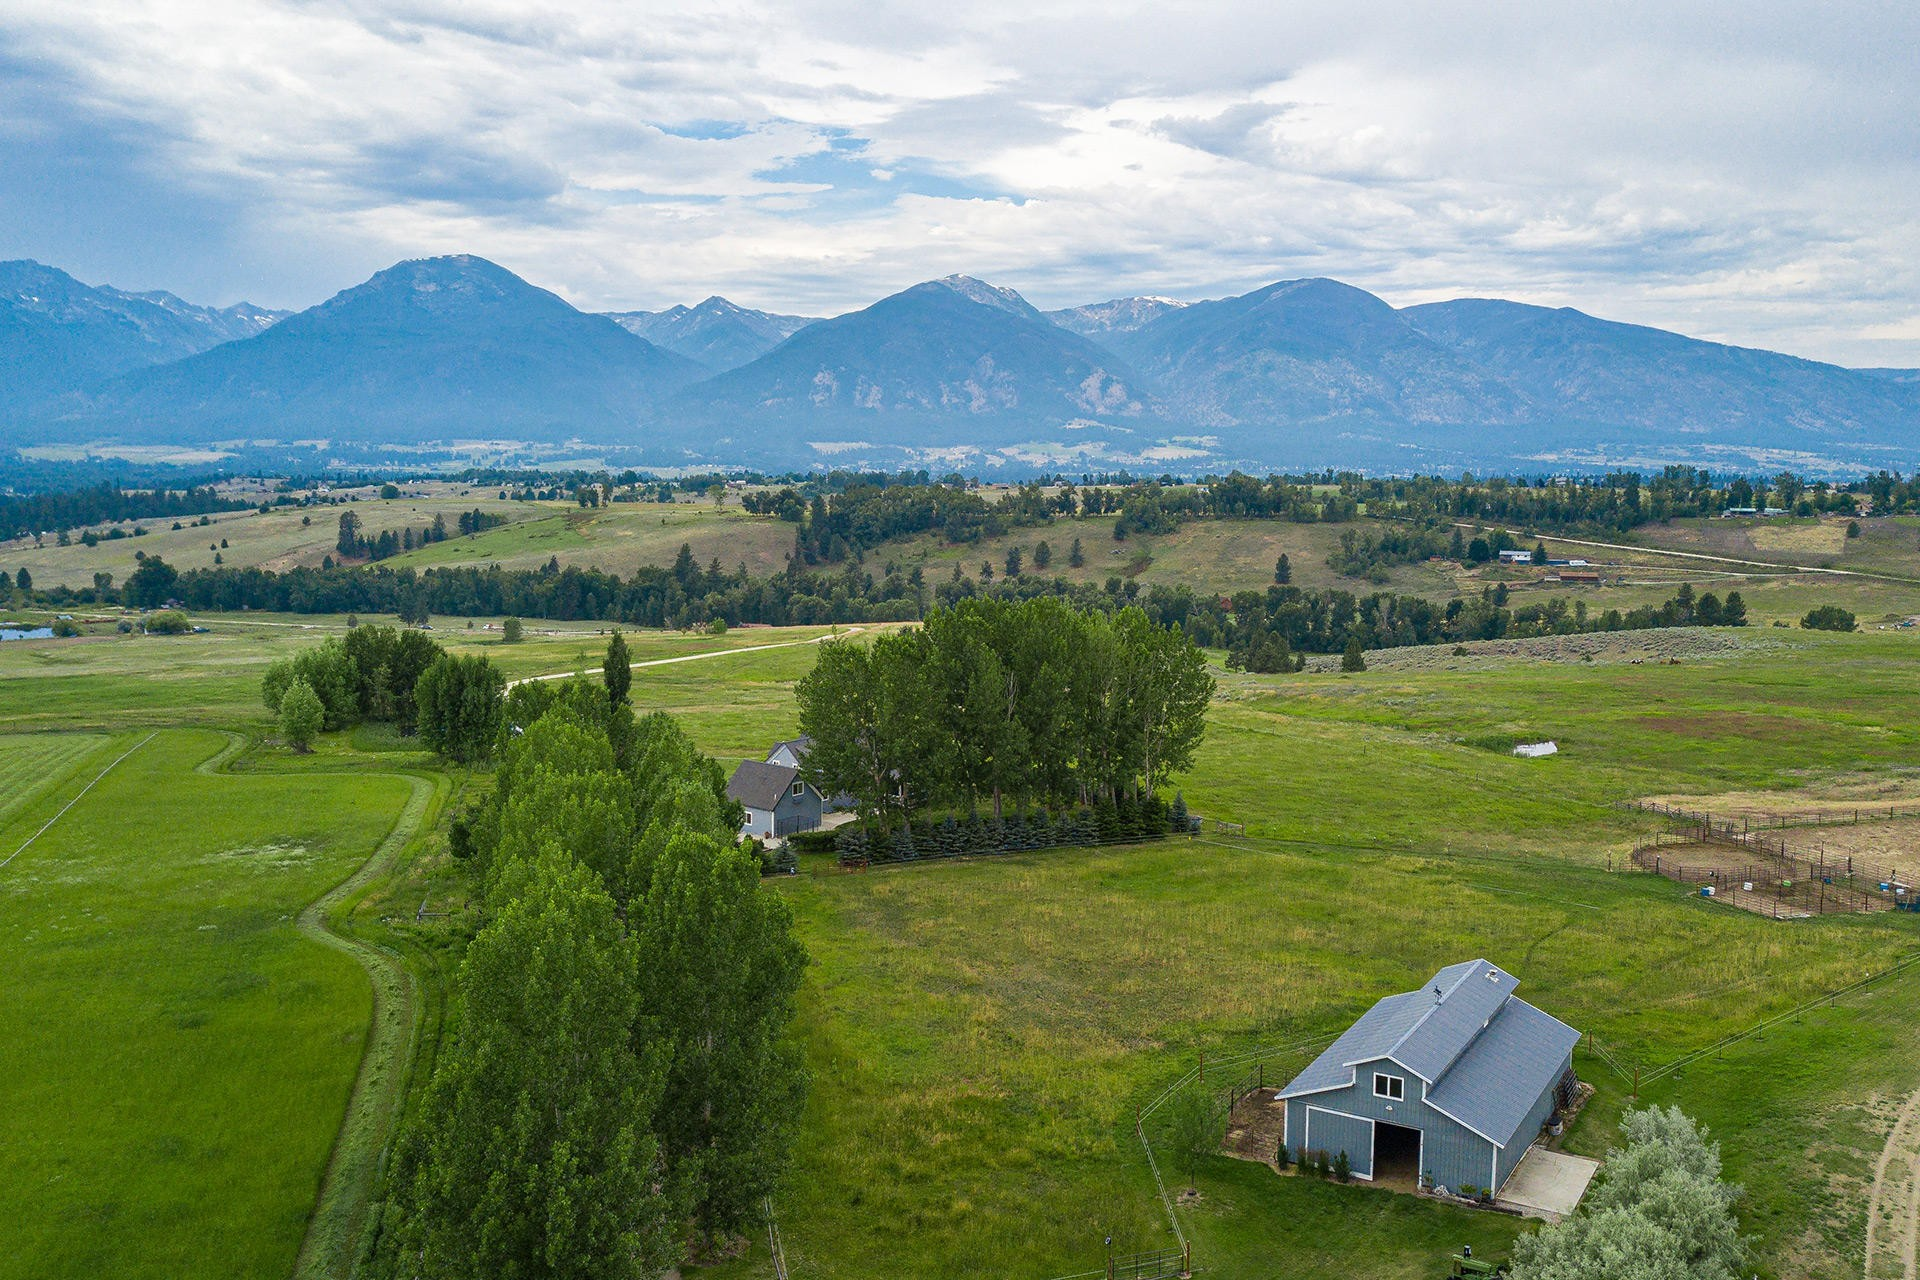 674 stage springs lane a luxury single family home for sale in stevensville, montana property id 21912735 christie s international real estate